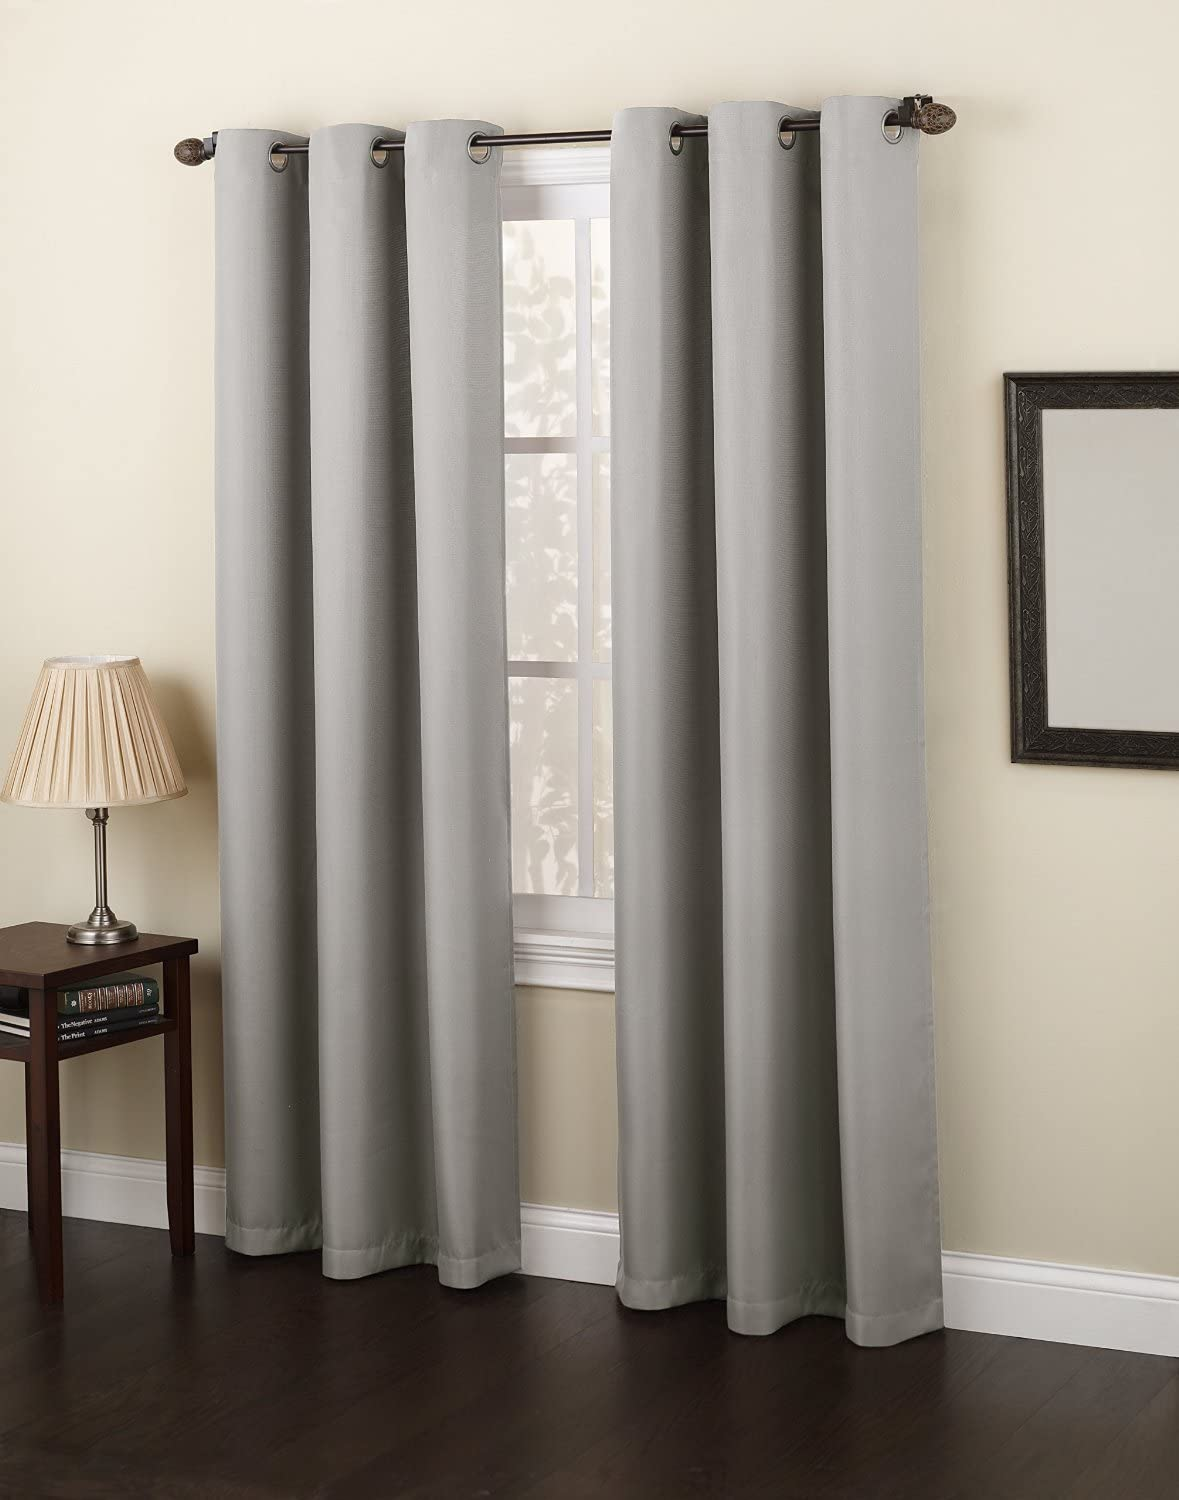 """Gorgeous HomeDIFFERENT SOLID COLORS & SIZES (#92) 1 PANEL SOLID FOAM LINED BLACKOUT HEAVY THICK MICROFIBER WINDOW CURTAIN DRAPES GROMMETS (GRAY, 84"""" LENGTH)"""